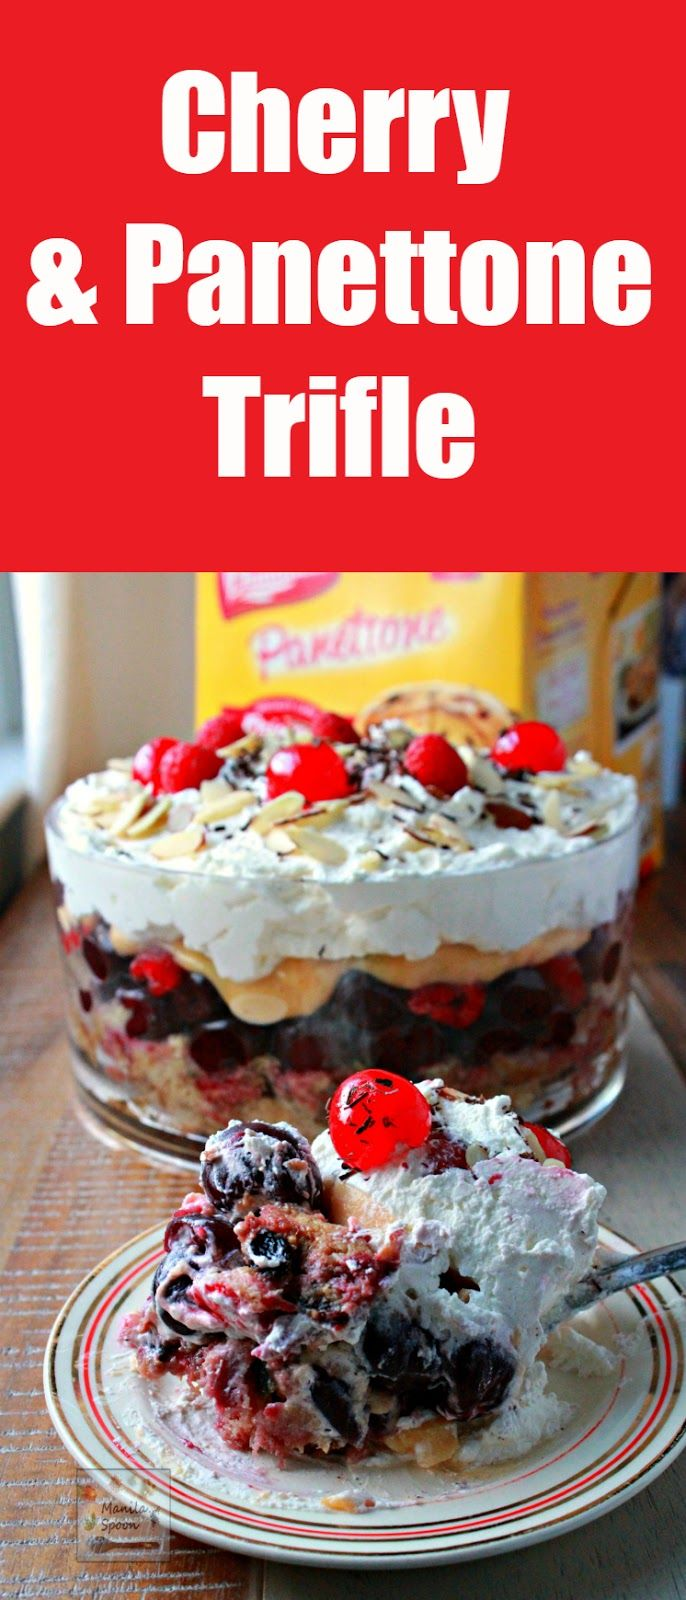 Freshly whipped cream, yummy custard, fruits plus Italian Panettone or any sponge cake make this a delicious and party-perfect Trifle! Cherry, Raspberry and Panettone Trifle